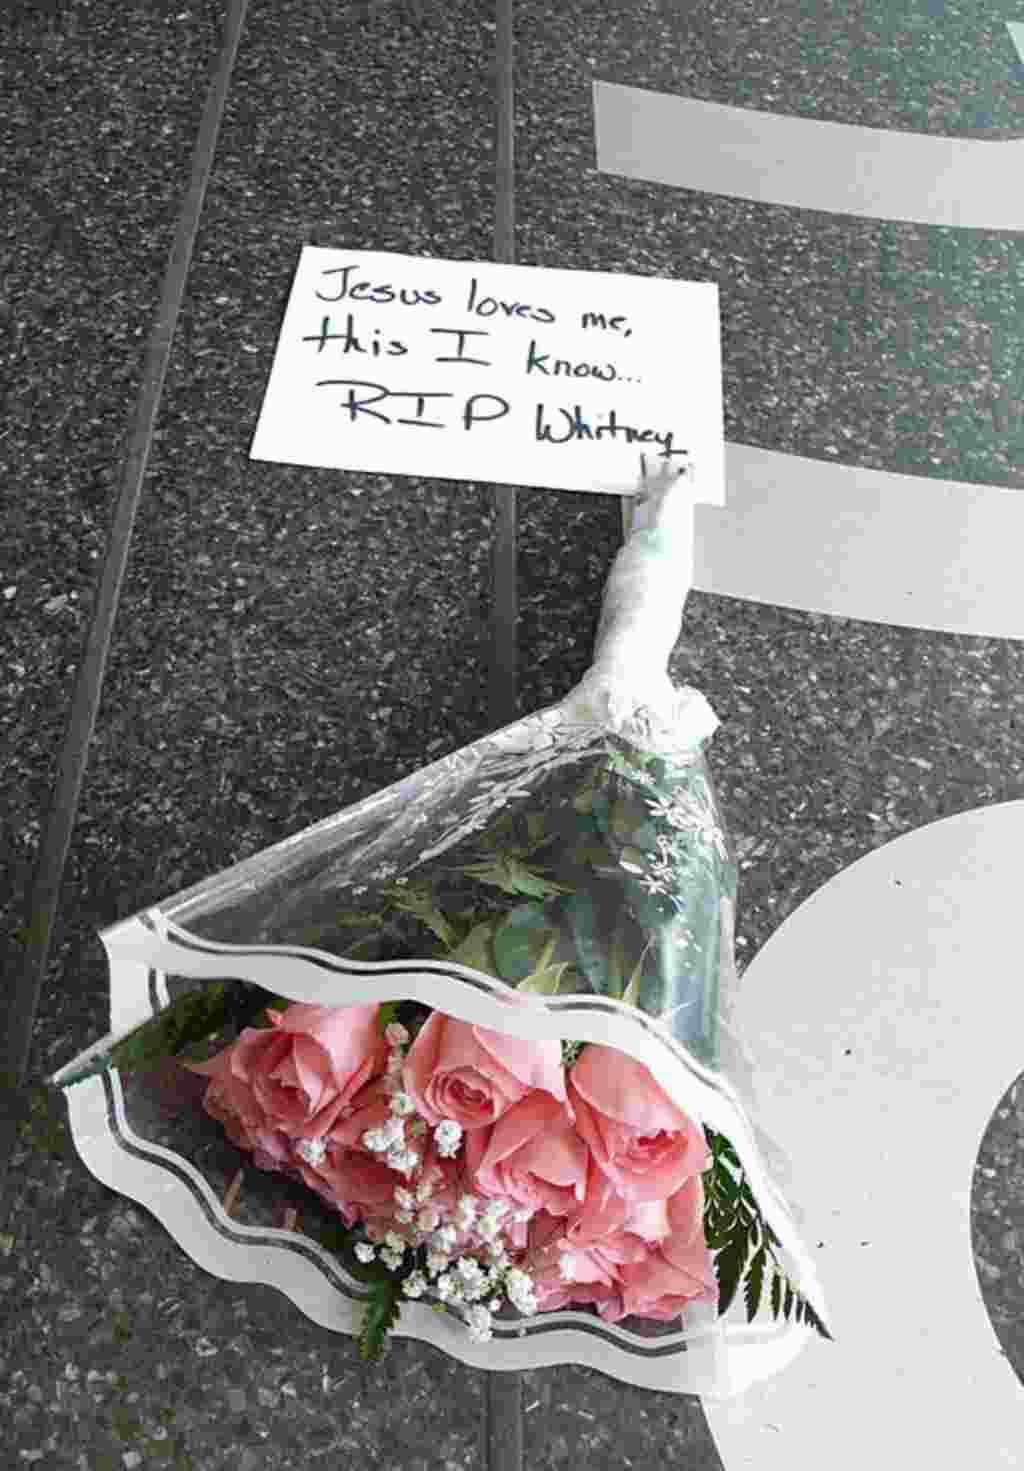 """A bouquet of pink roses placed at the entrance to Harlem's Apollo Theater in New York bears lyrics from the last song music superstar Whitney Houston ever sang in public, """"Yes, Jesus Loves Me."""" Houston, 48, died February 11, 2012 in Los Angeles. (AP)"""